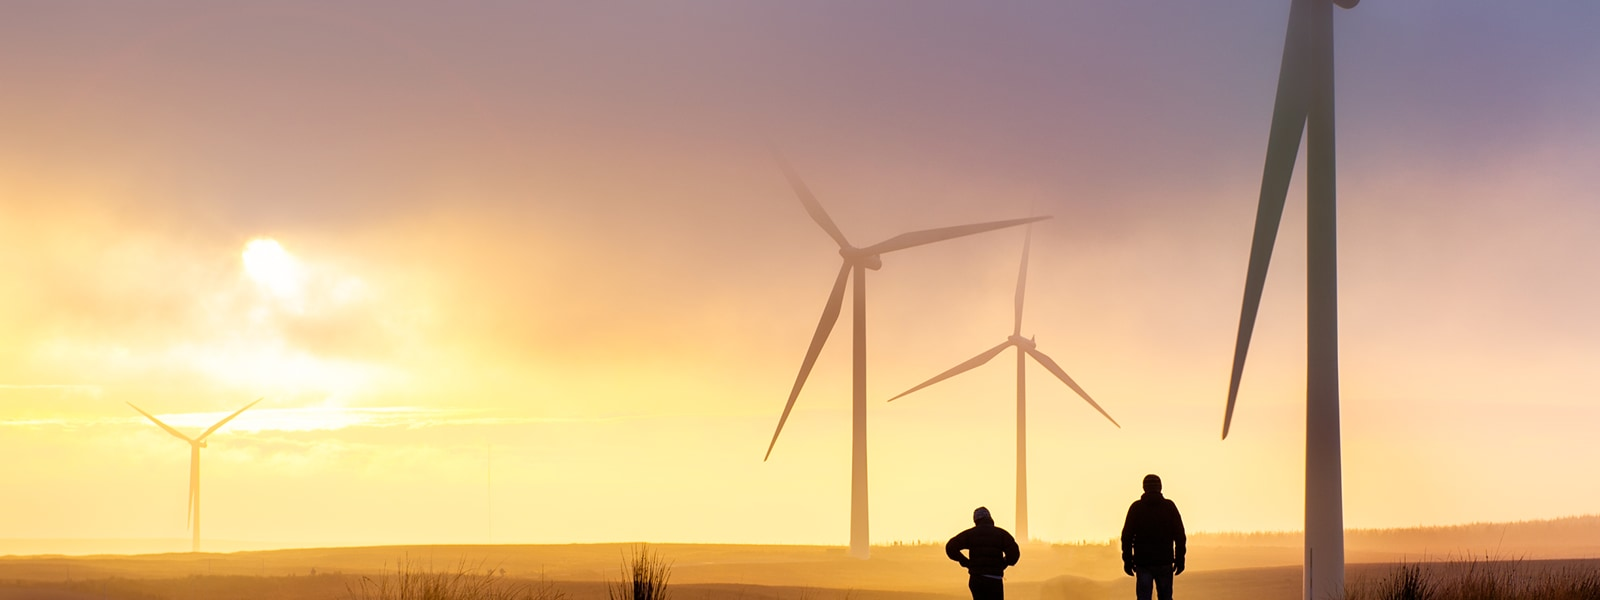 2 workers silhouetted by the sunset in front of a windfarm.